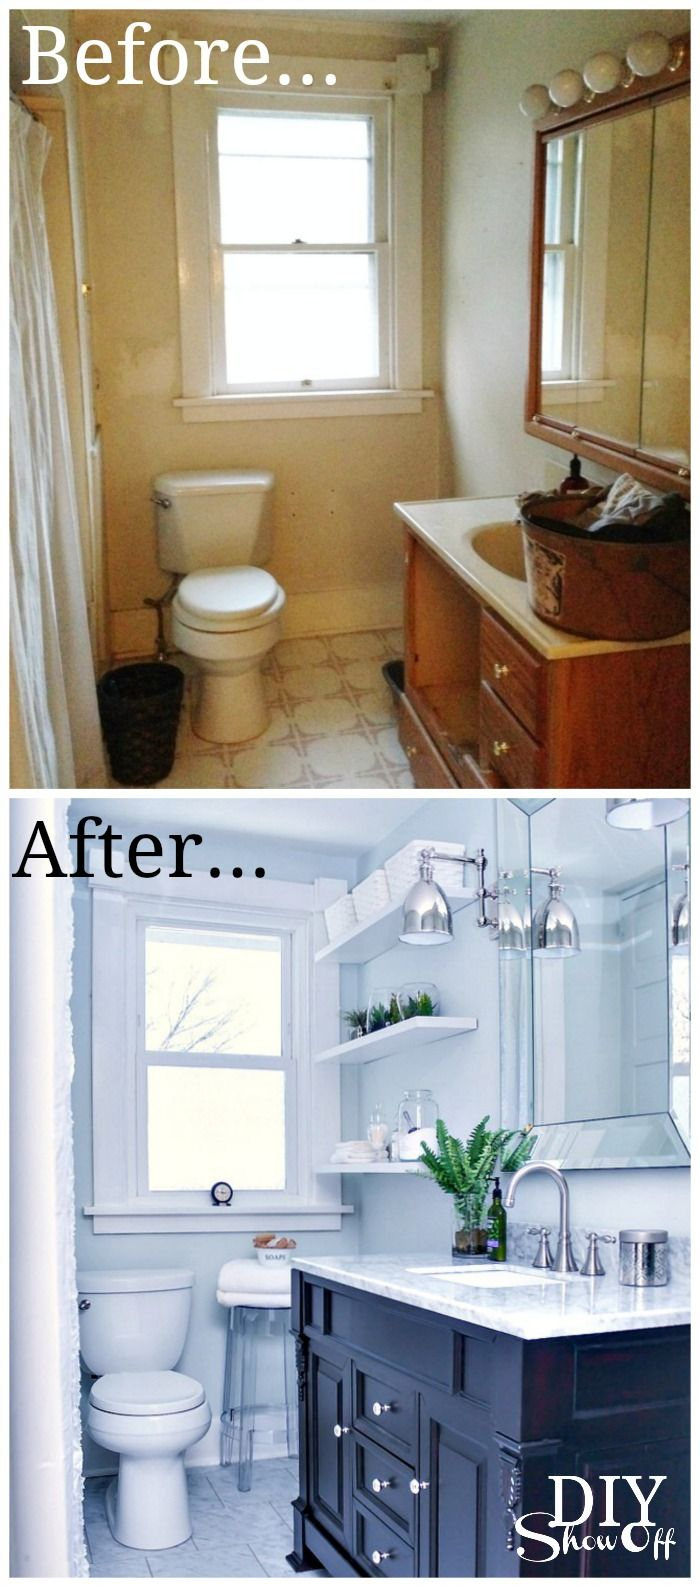 Bathroom Renovation Shows diy show off | diy decorating